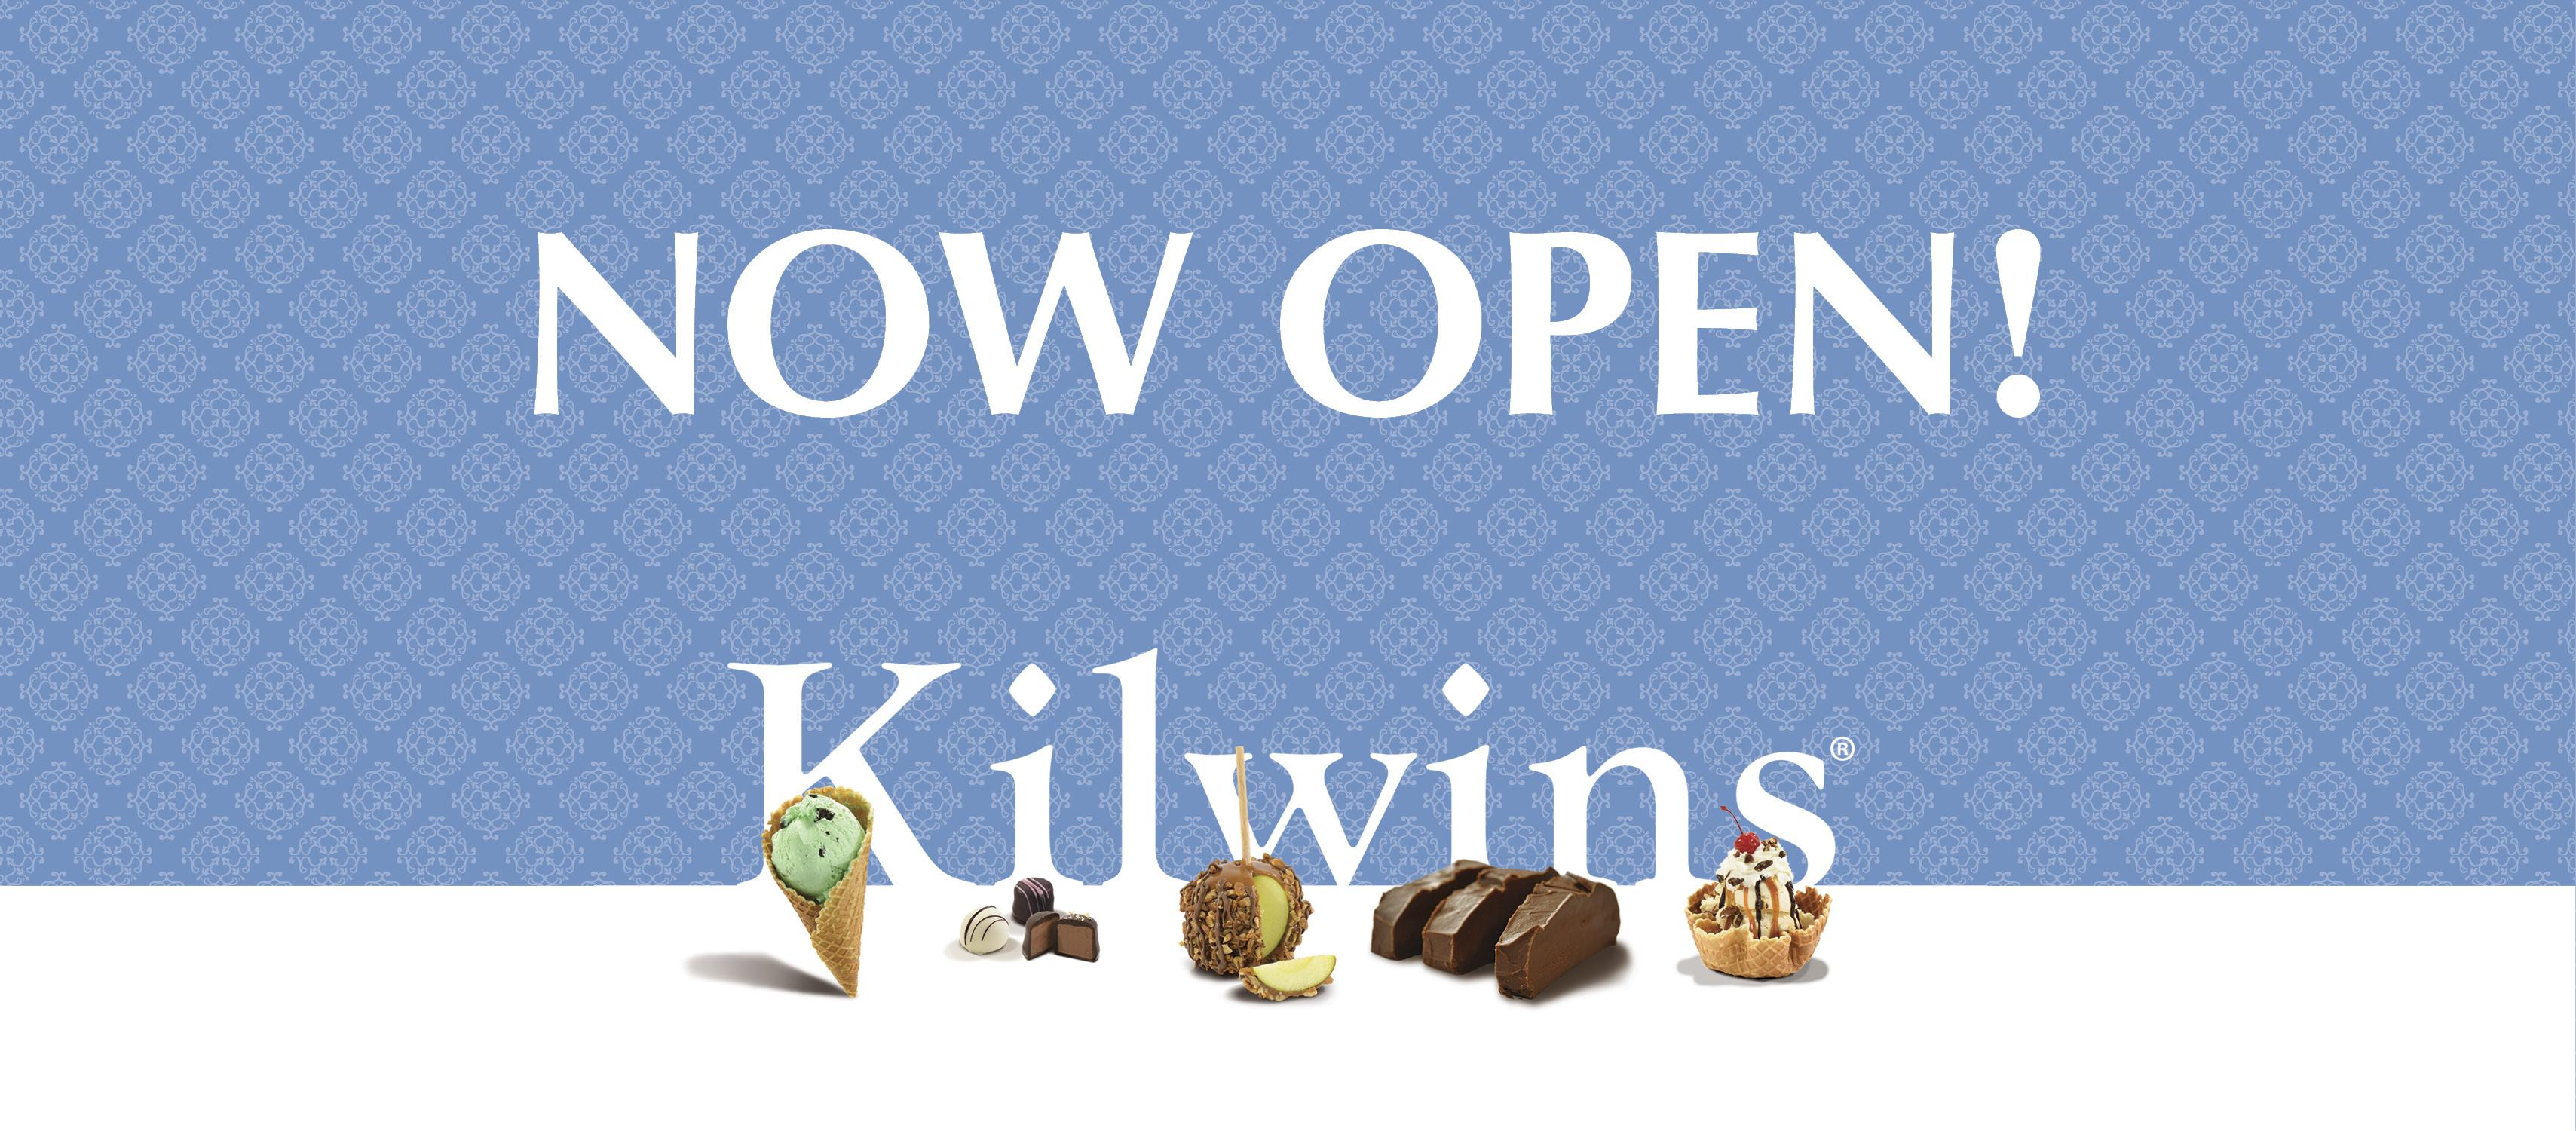 Now Open Graphic